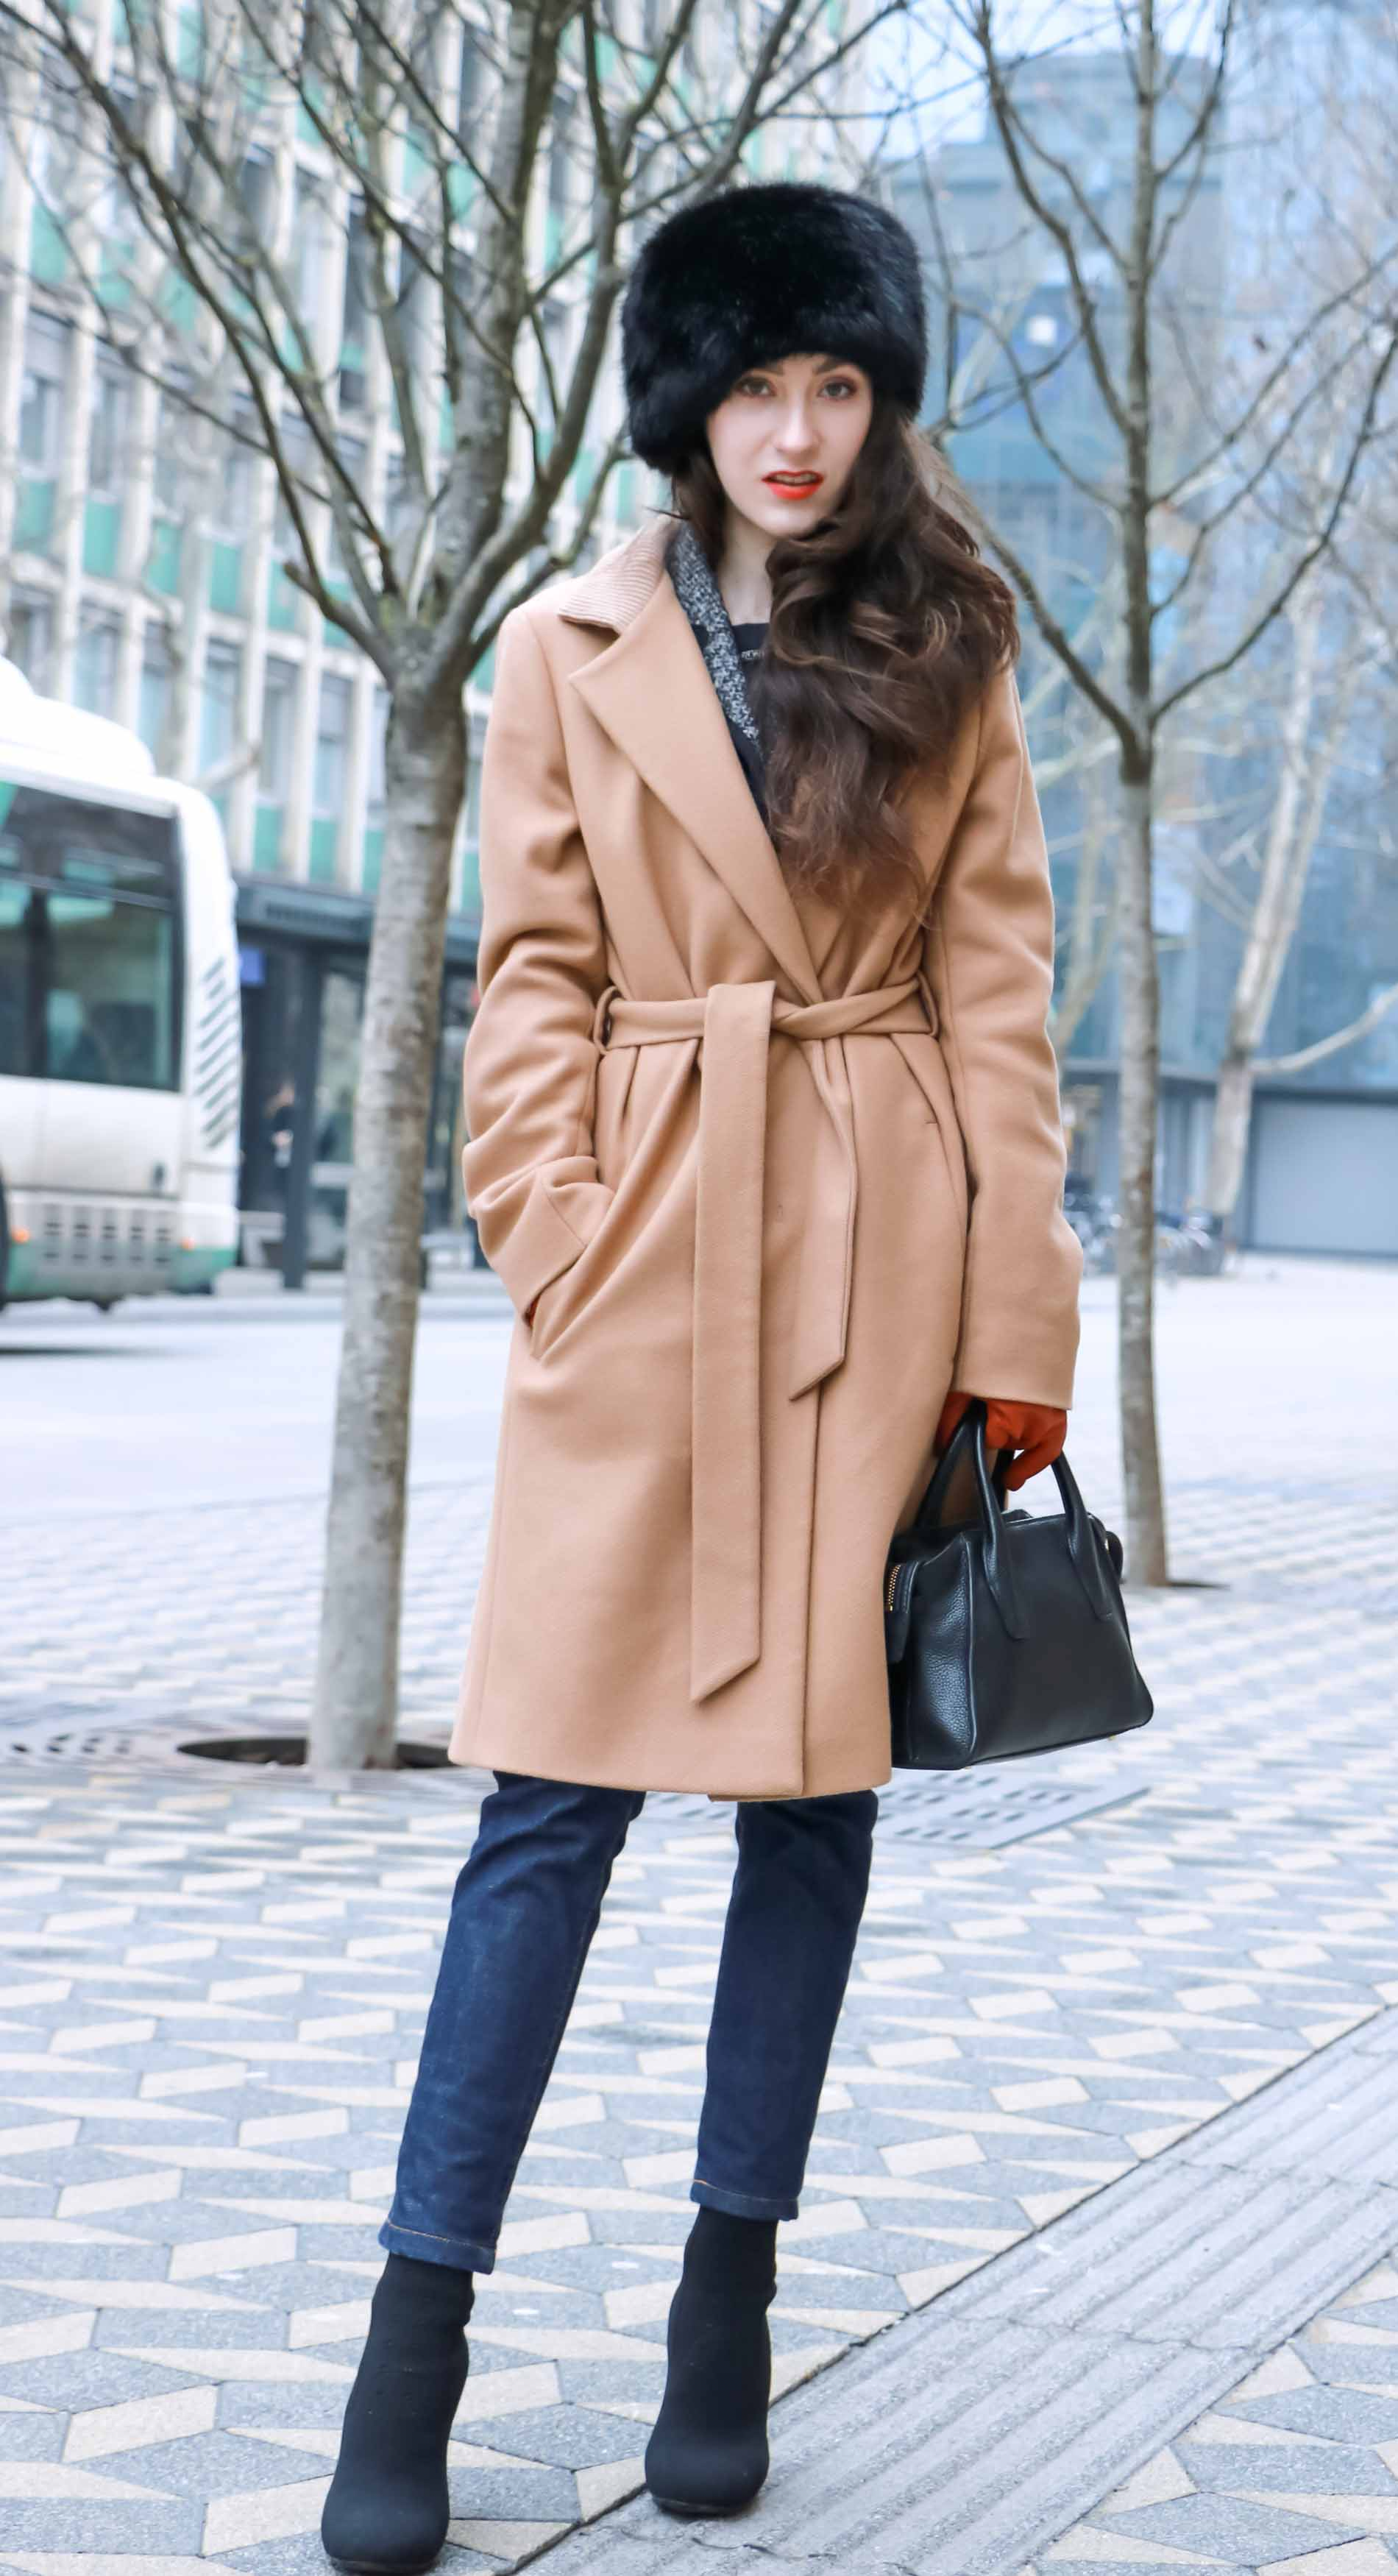 Fashion Blogger Veronika Lipar of Brunette from Wall Street wearing her everyday winter outfit